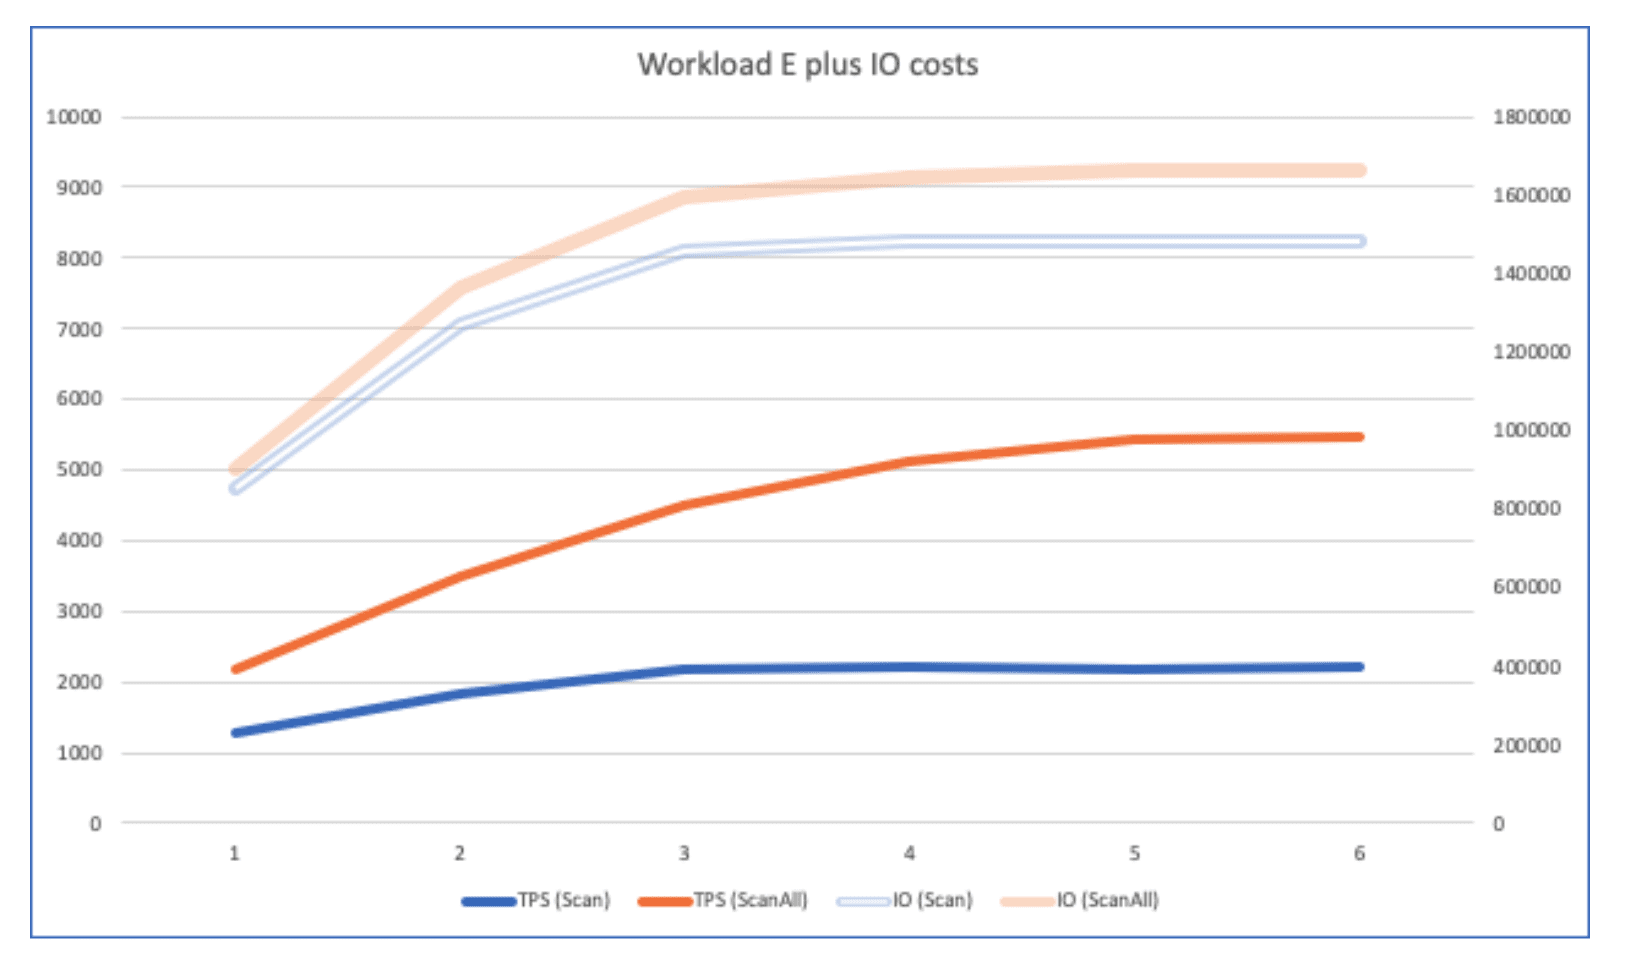 Workload E Plus IO Costs